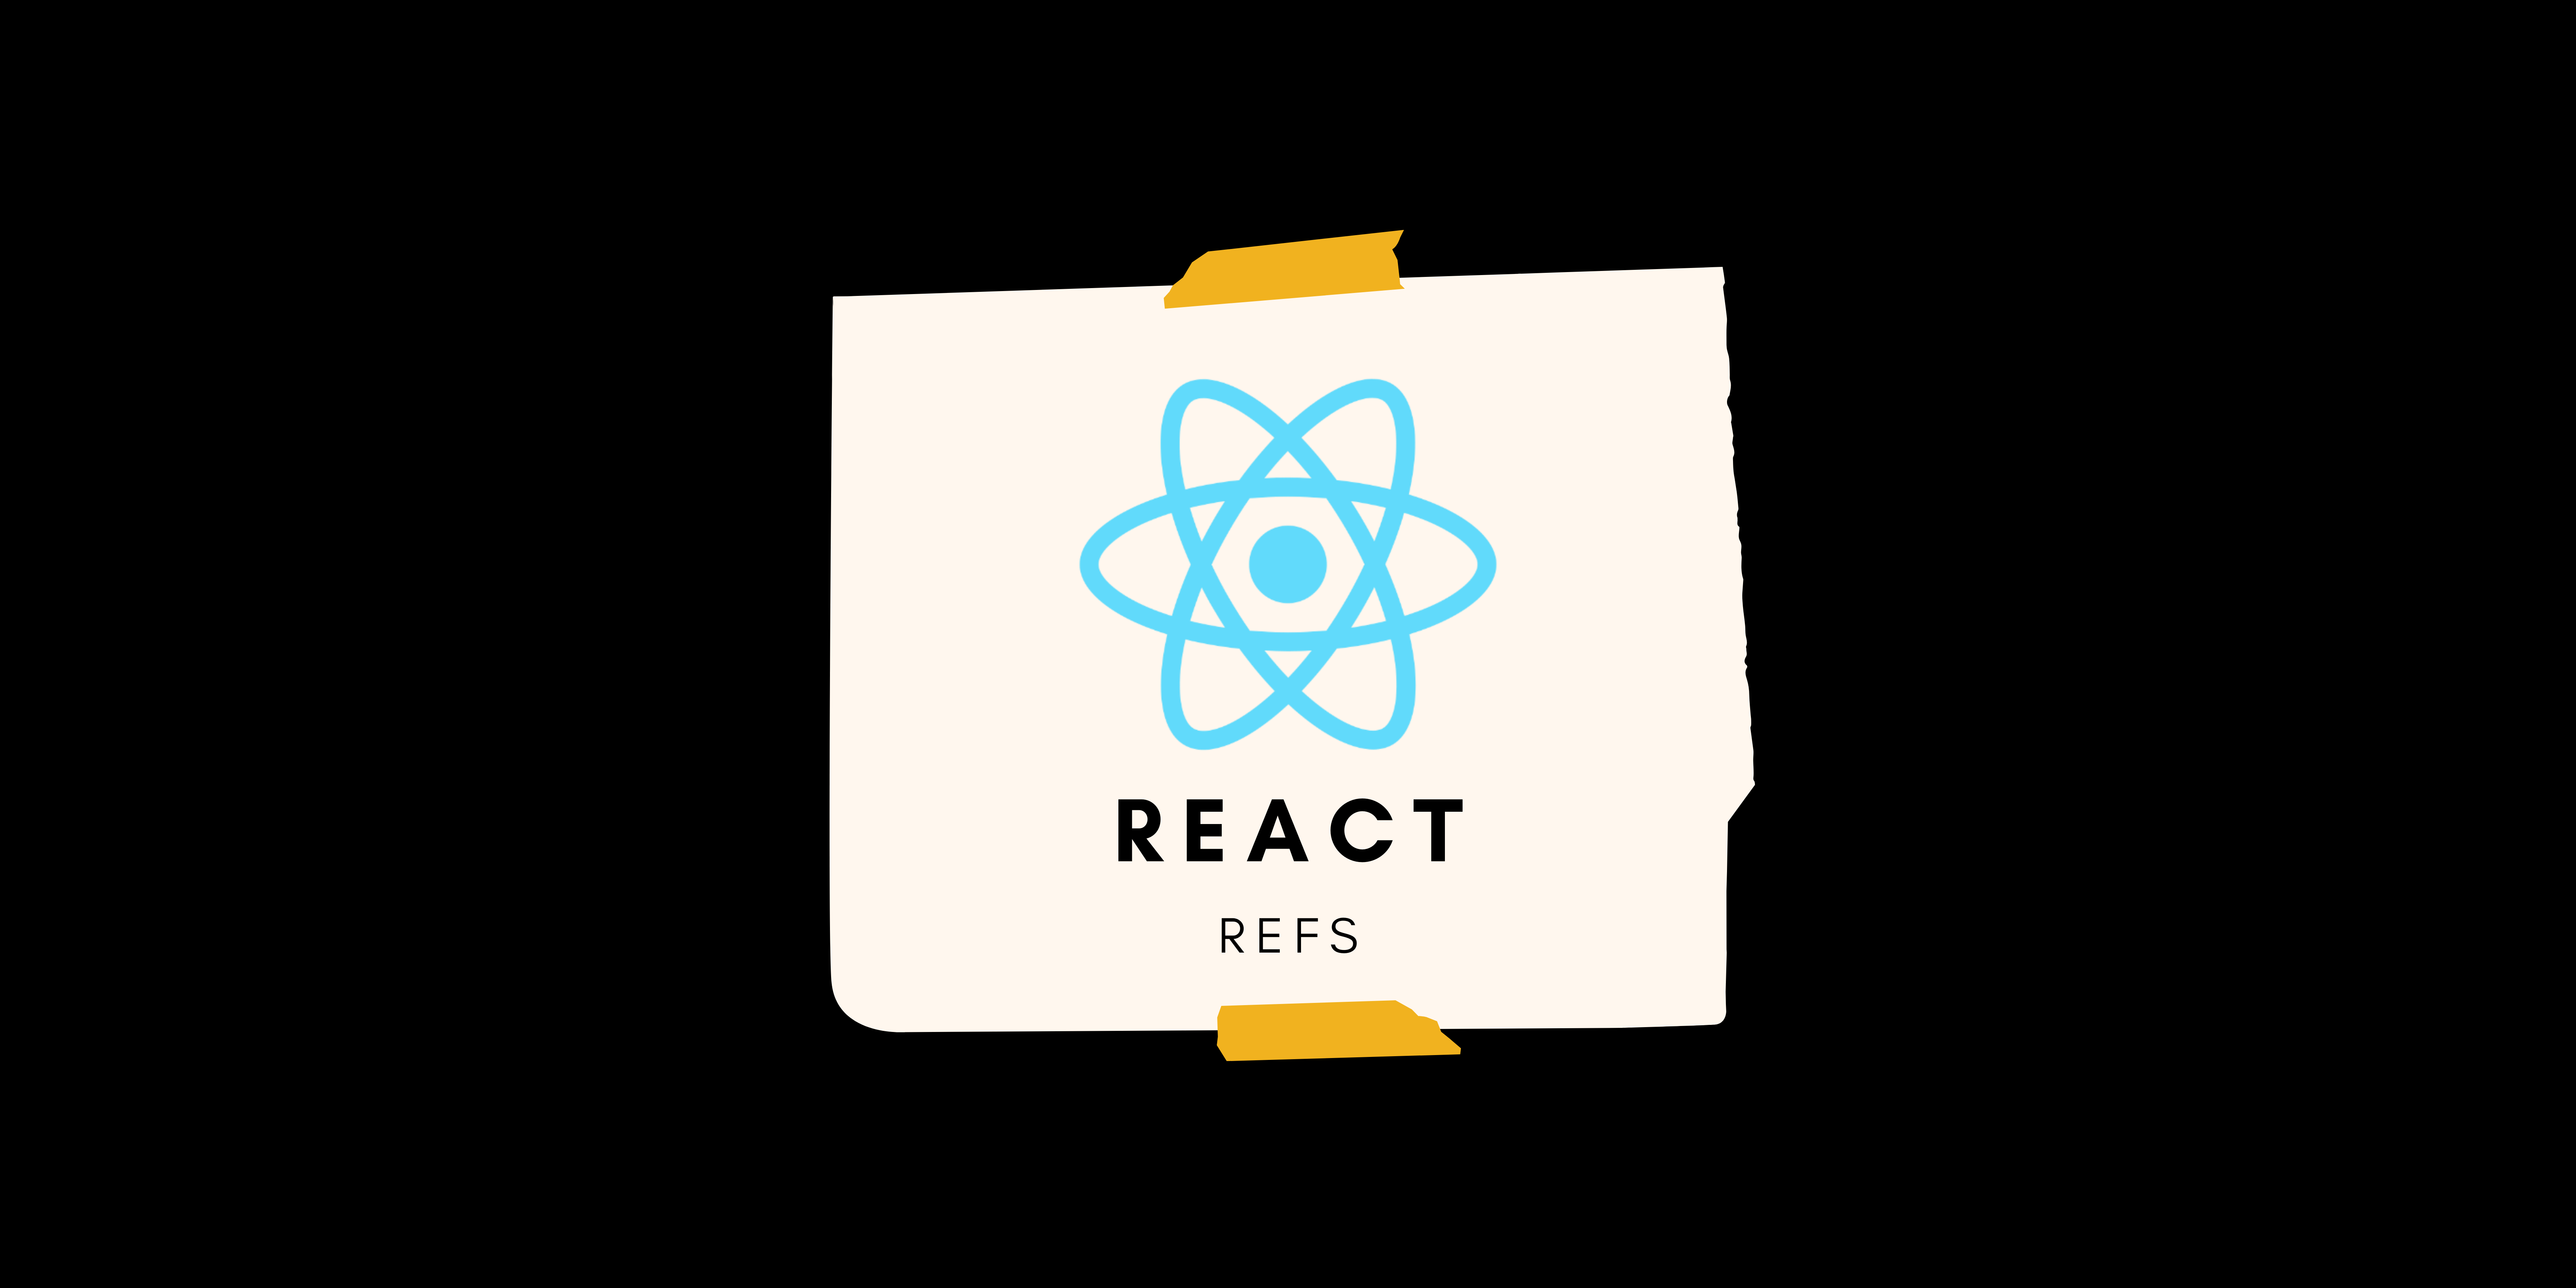 React Refs: Everything you need to know